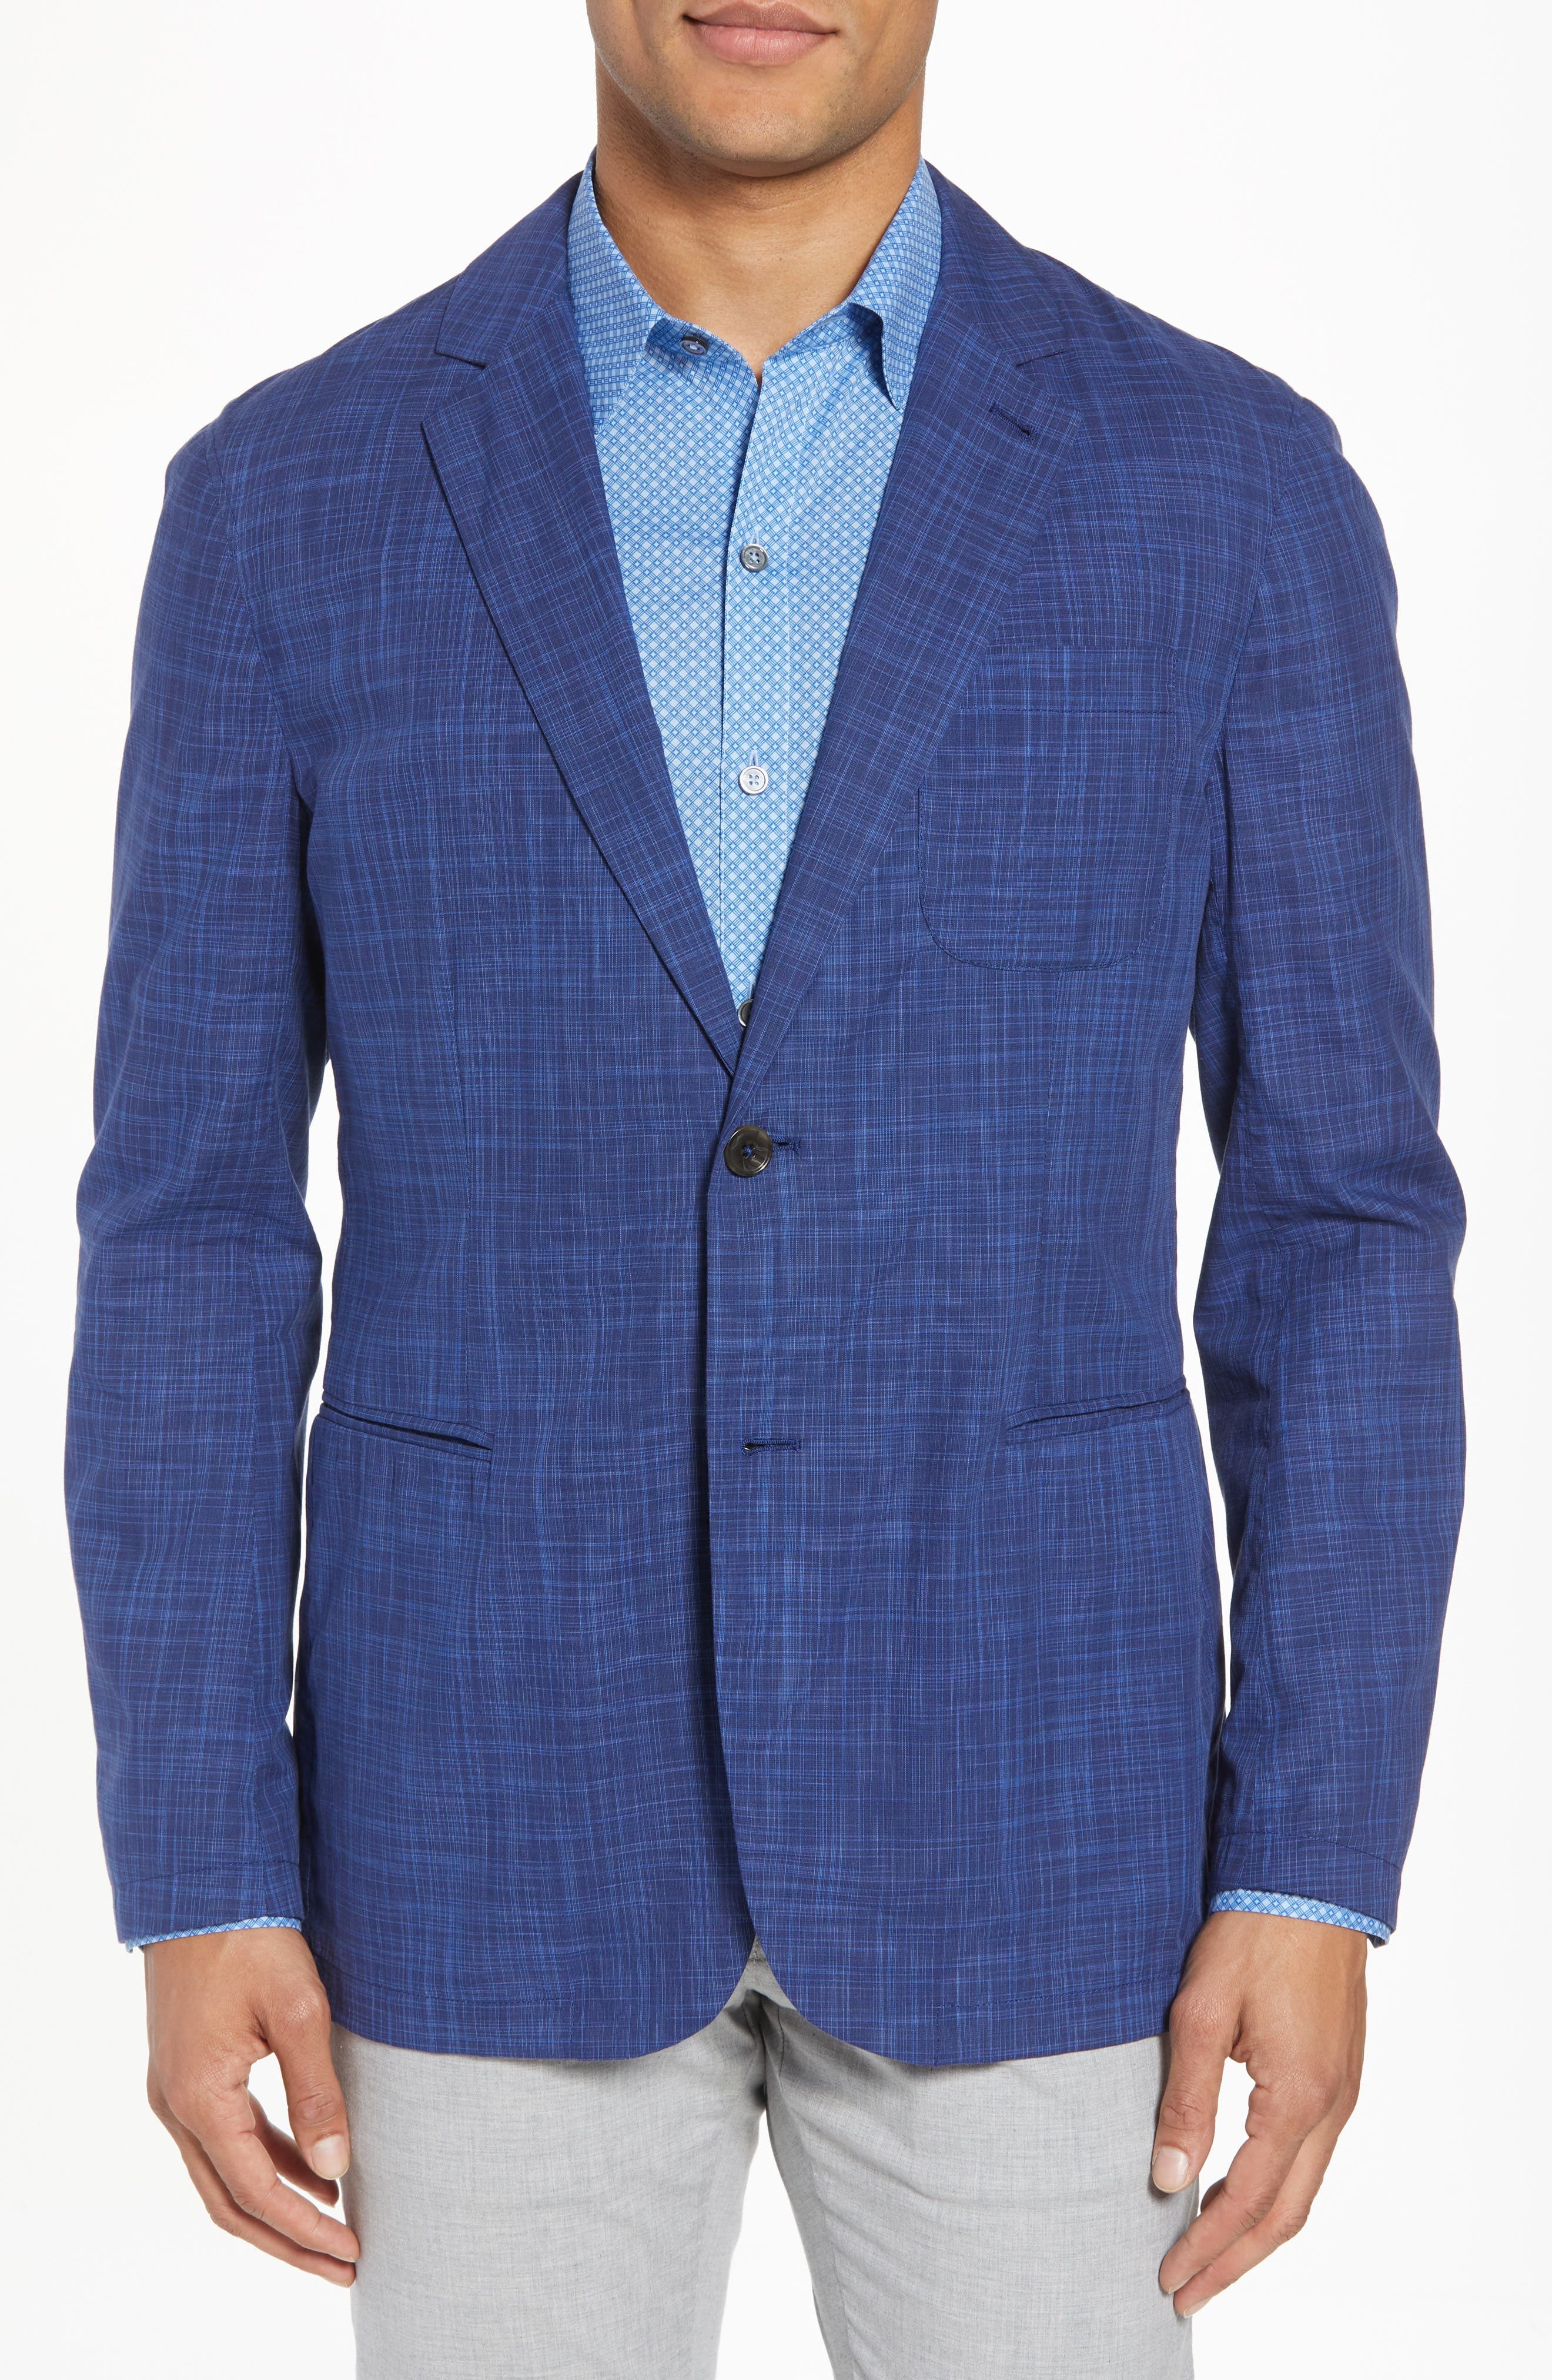 Belmont Regular Fit Sport Coat,                             Main thumbnail 1, color,                             400